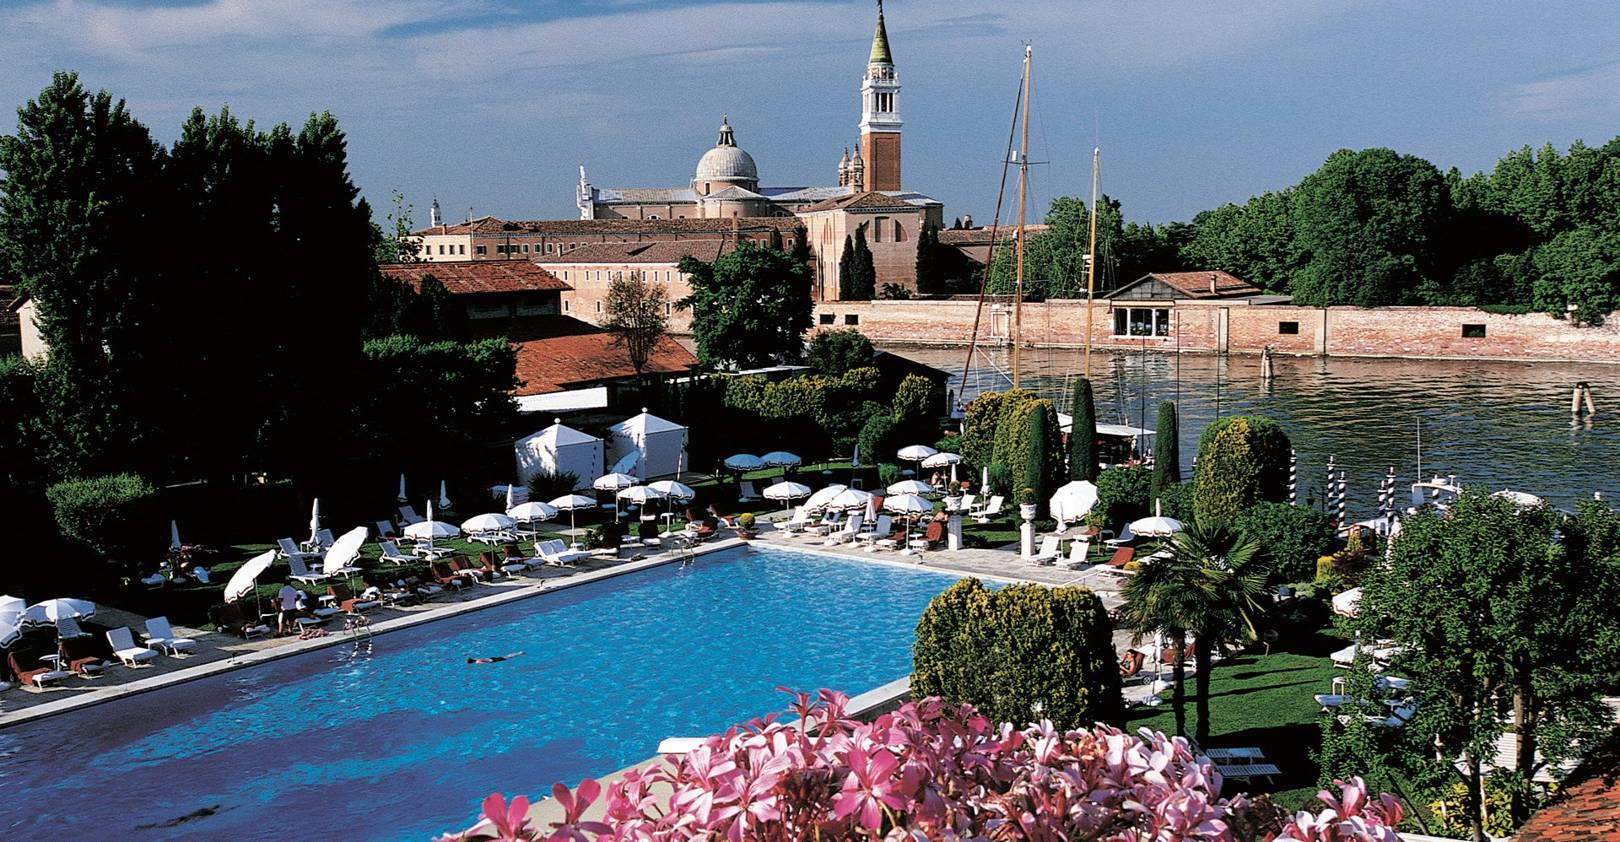 The best Venice hotels